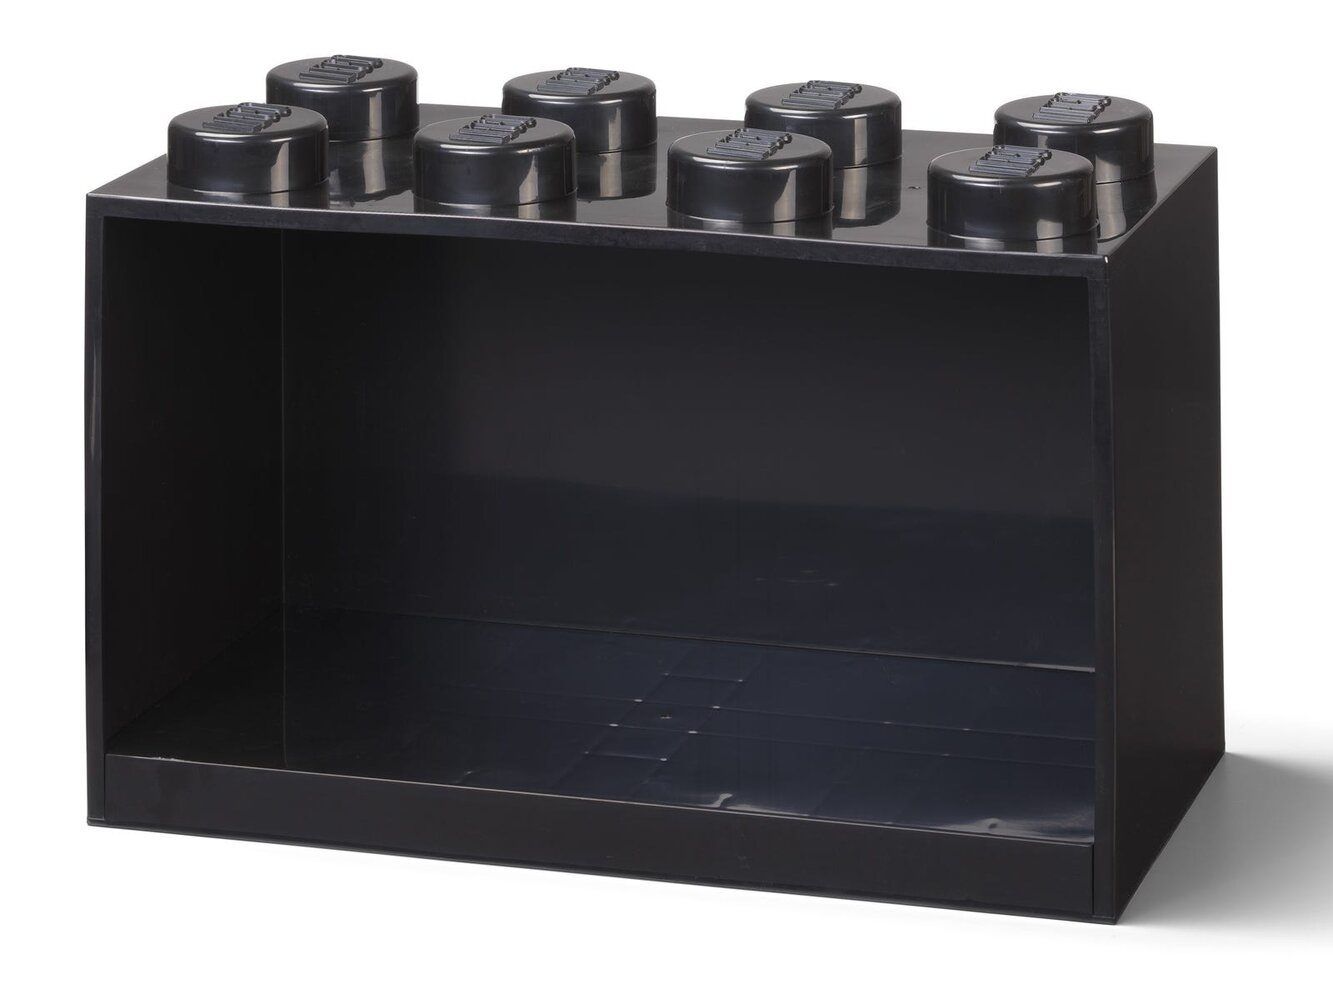 Brick Shelf 8 Knobs (Black)